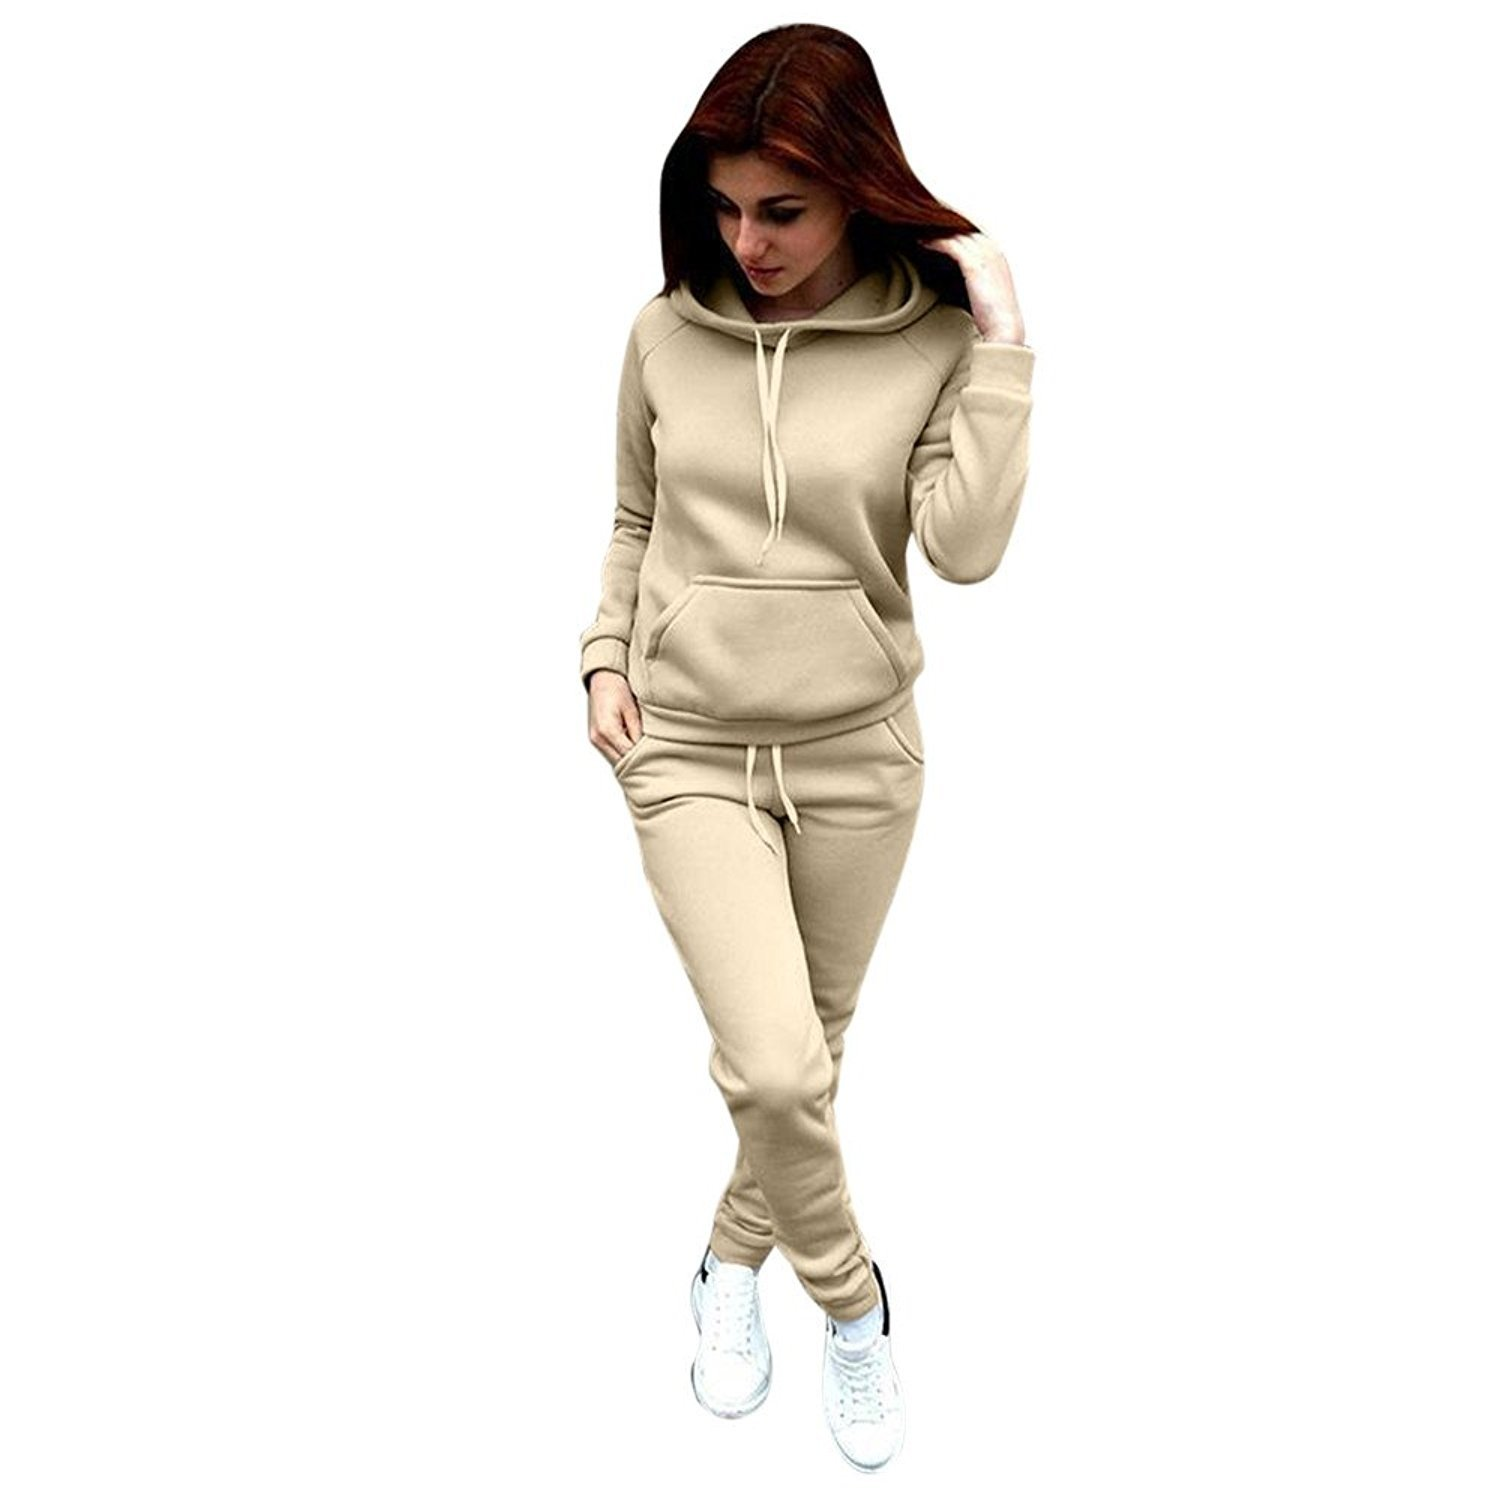 Challyhope Tracksuit, Women Casual Sweatshirt Hoodie + Sweatpants Two-Pieces Outfit (Beige, M)